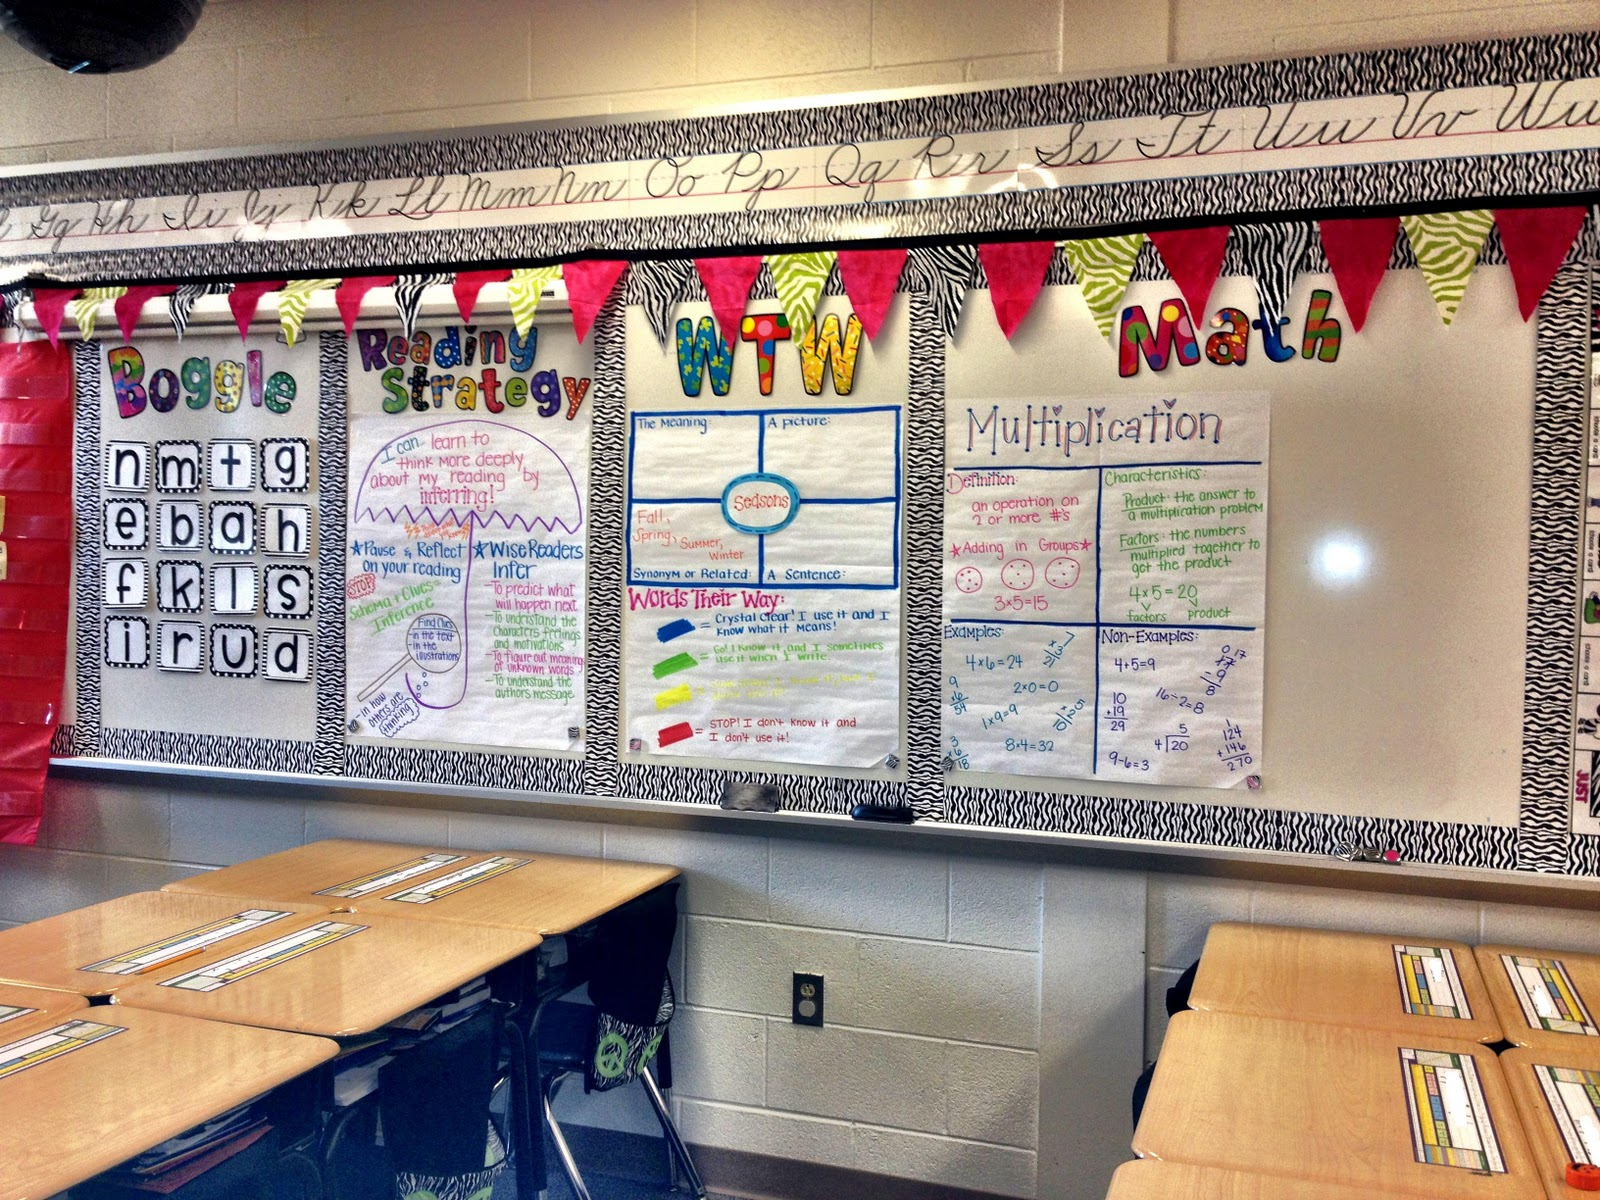 Math Focus Wall http://flipflopteacher.blogspot.com/2011/12/new-years-resolution.html